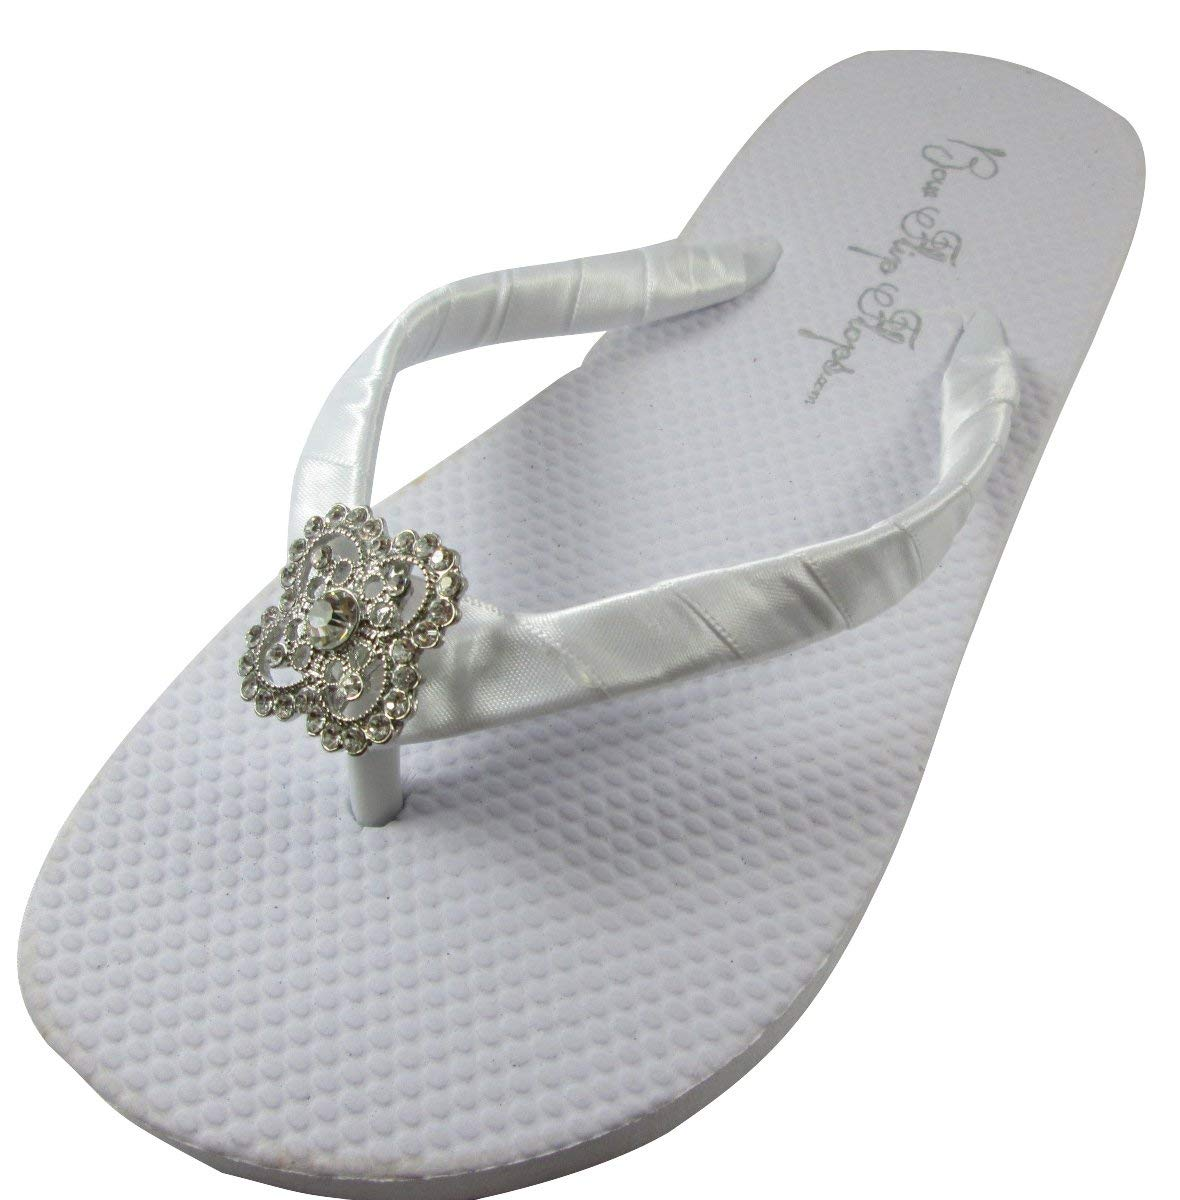 eb8cce4dcd0f00 Get Quotations · Square Filigree Rhinestone Embellishment Flat Flip Flops  with Satin Ribbon- custom color